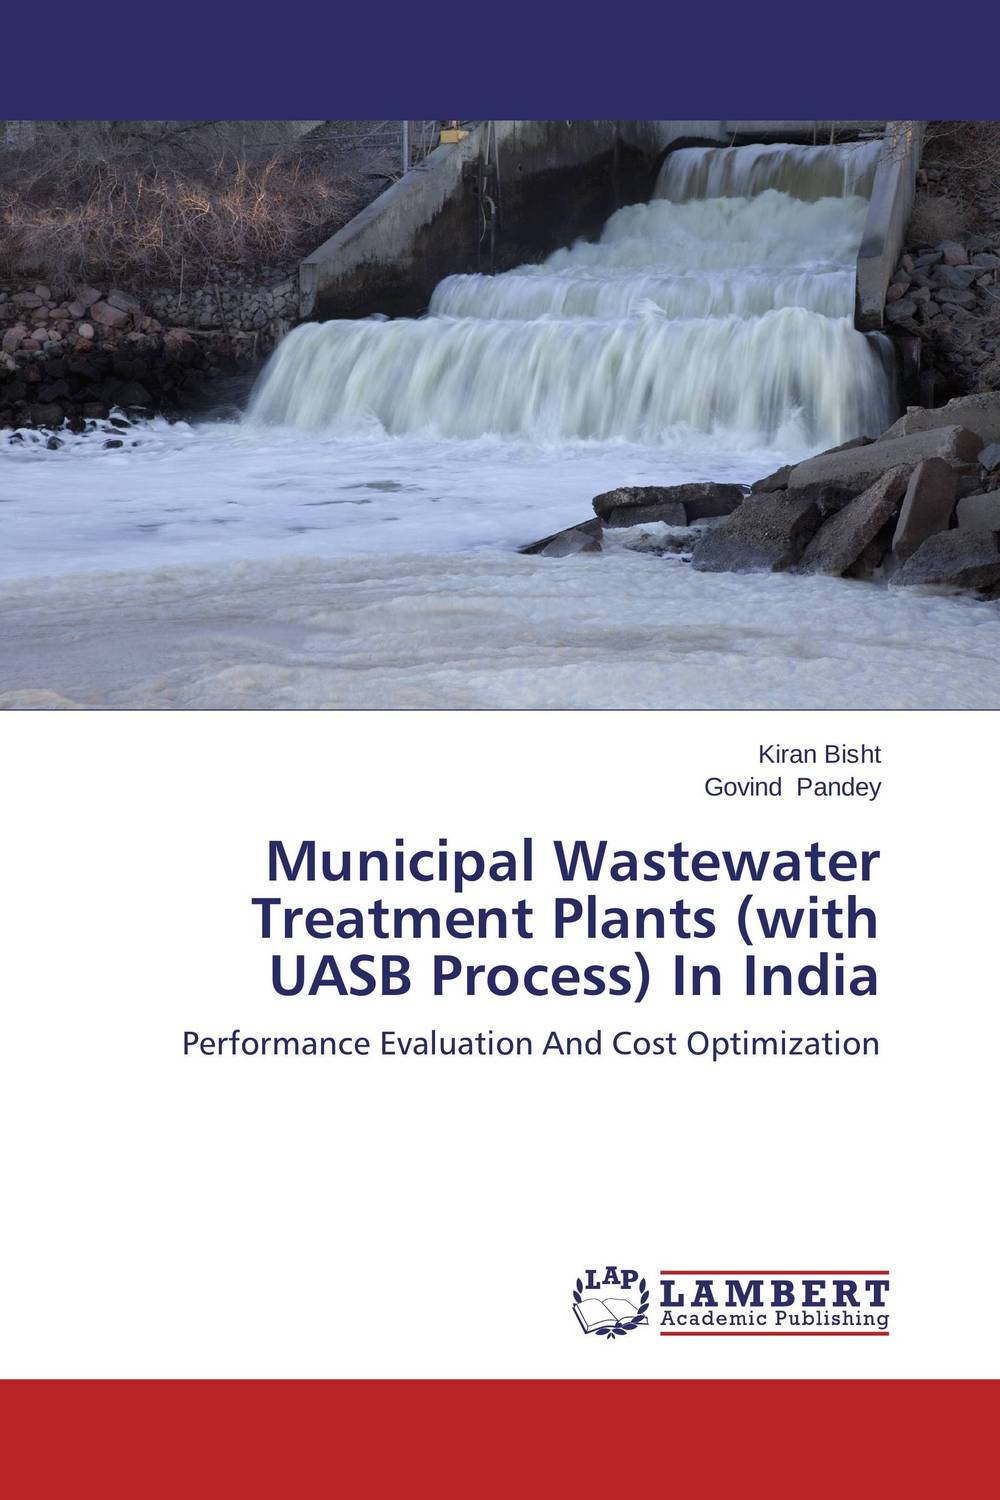 Municipal Wastewater Treatment Plants (with UASB Process) In India макграт м создание приложений на android для начинающих